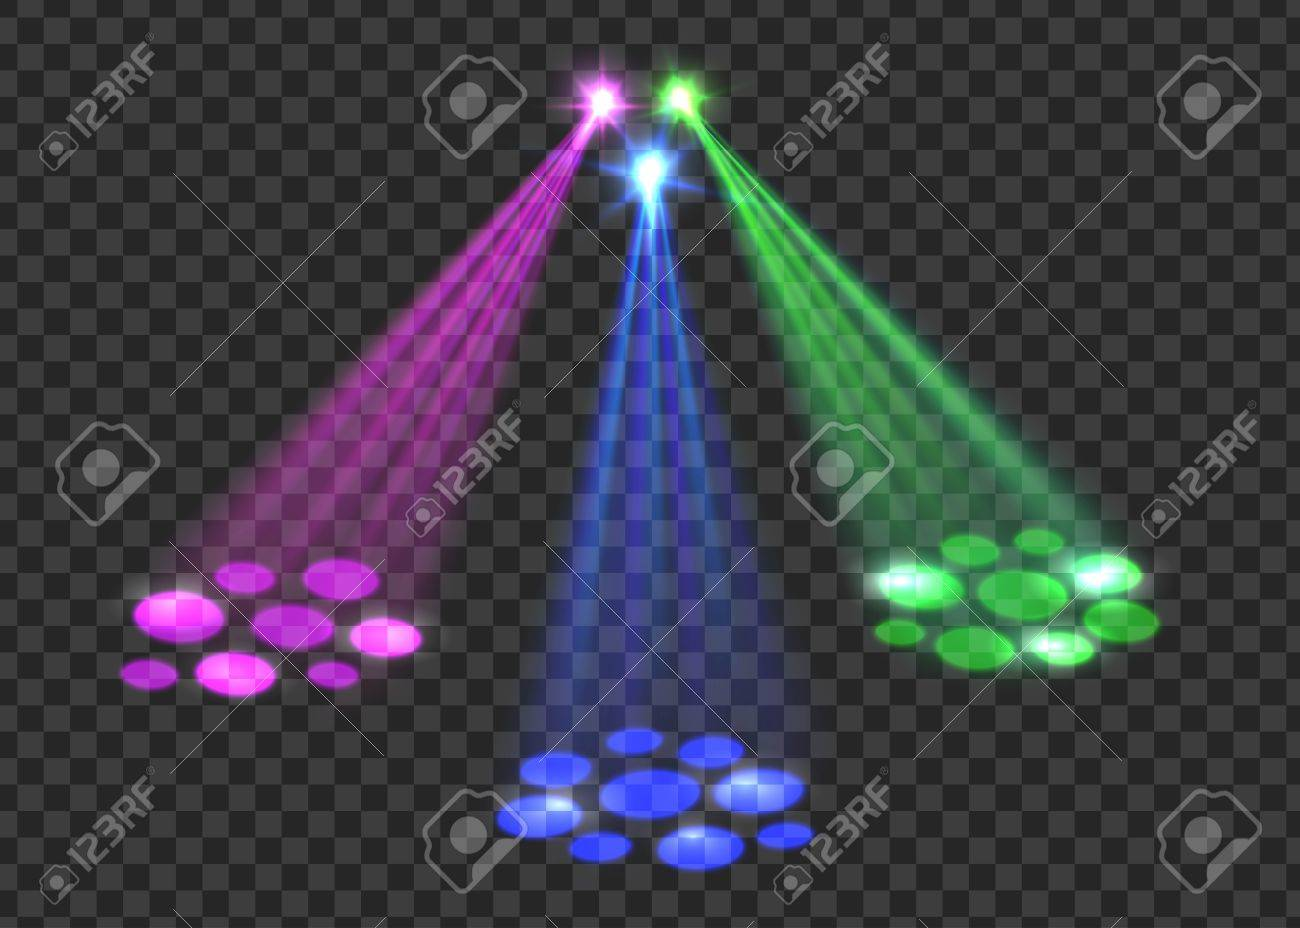 Concert Light Over Transparent Background Abstract Scene With Red Green Blue Lights For